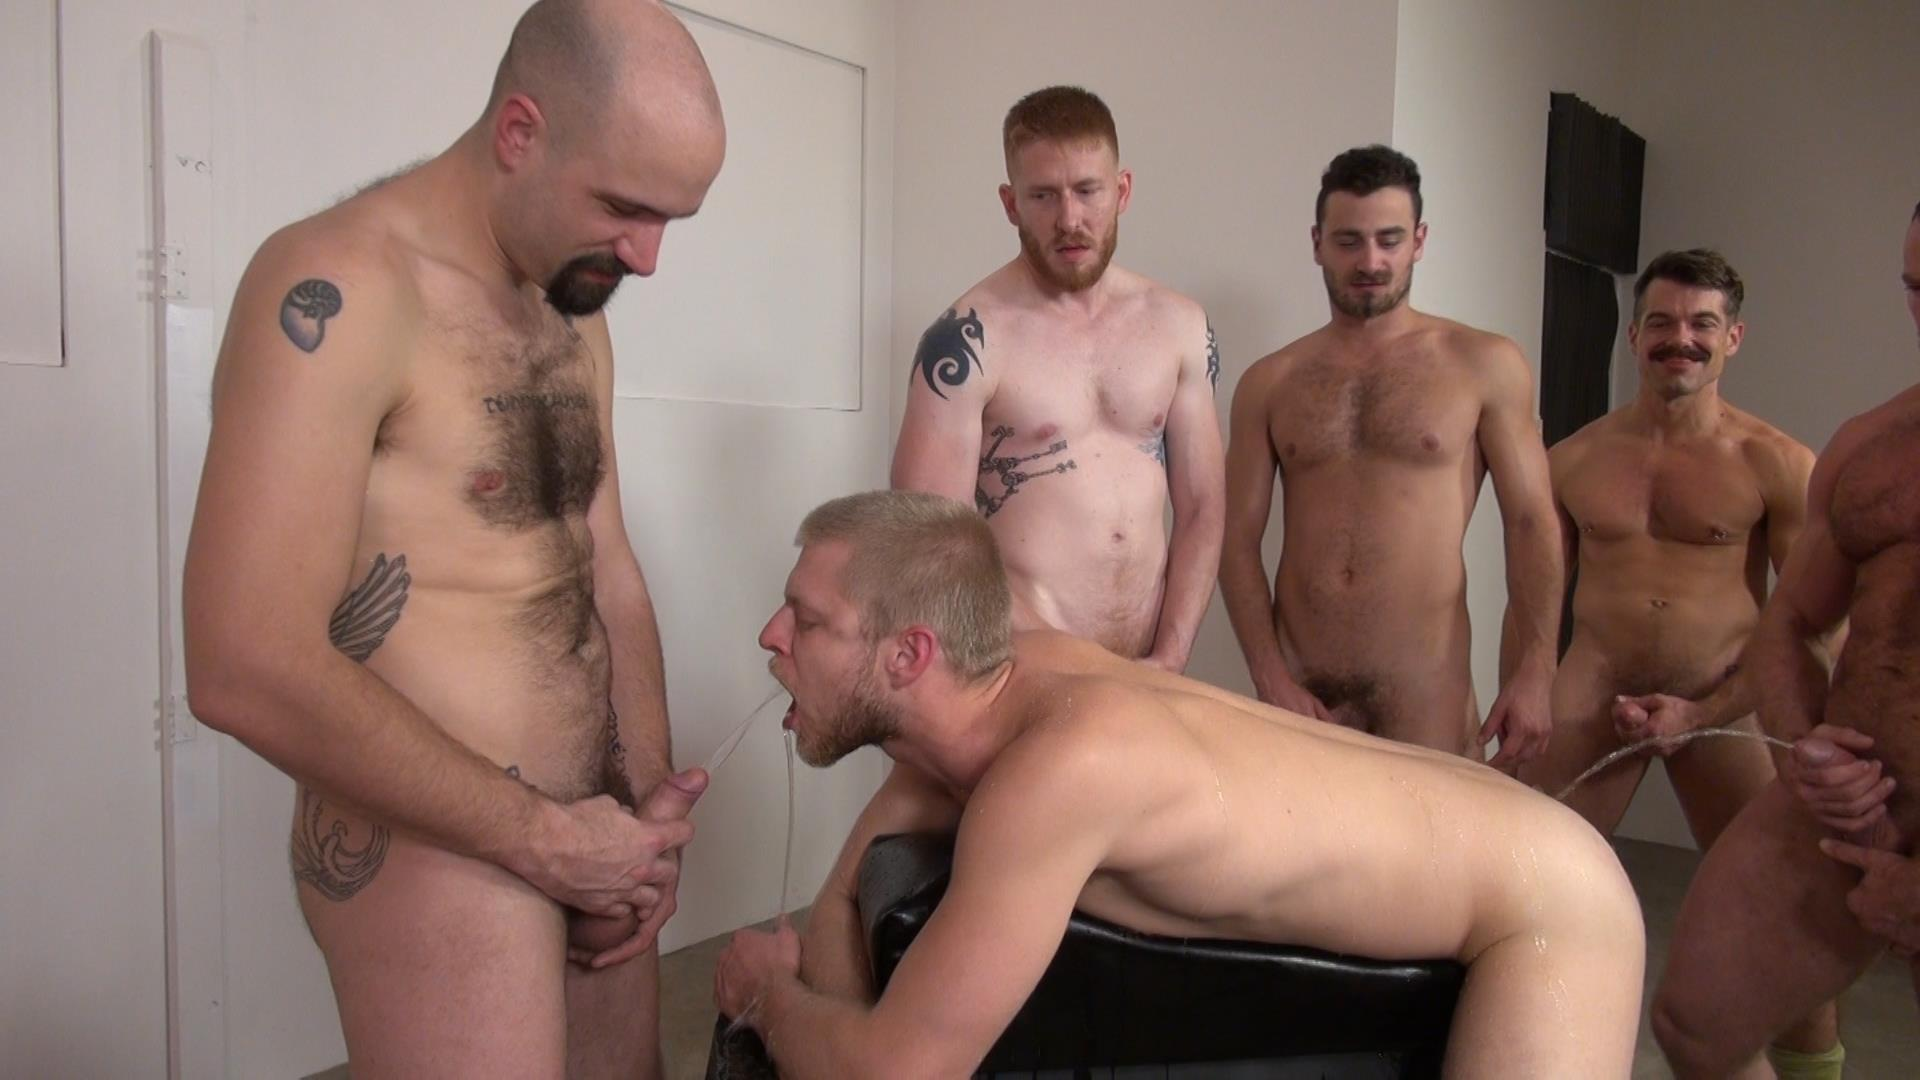 Gays hot sex ultimate shower cum ending